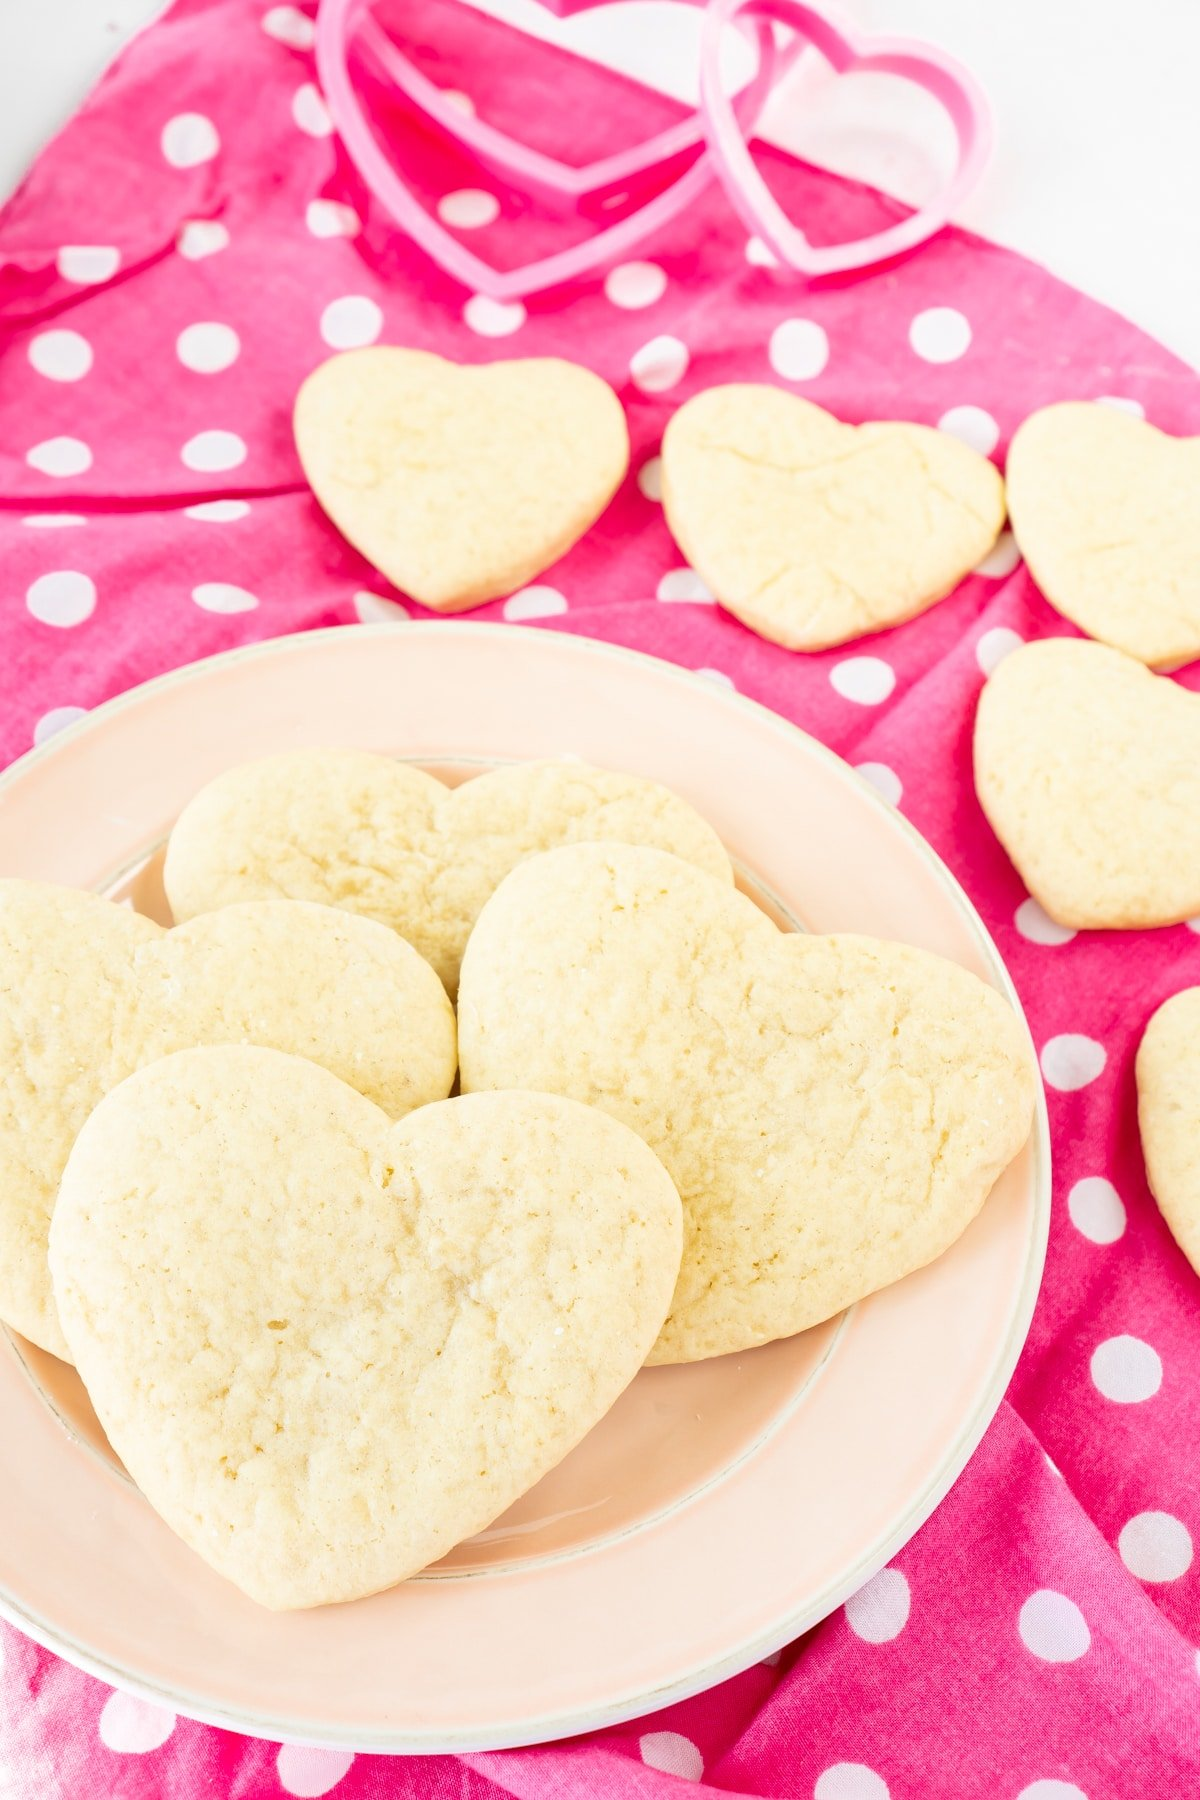 Plate with heart shaped cut out sugar cookies